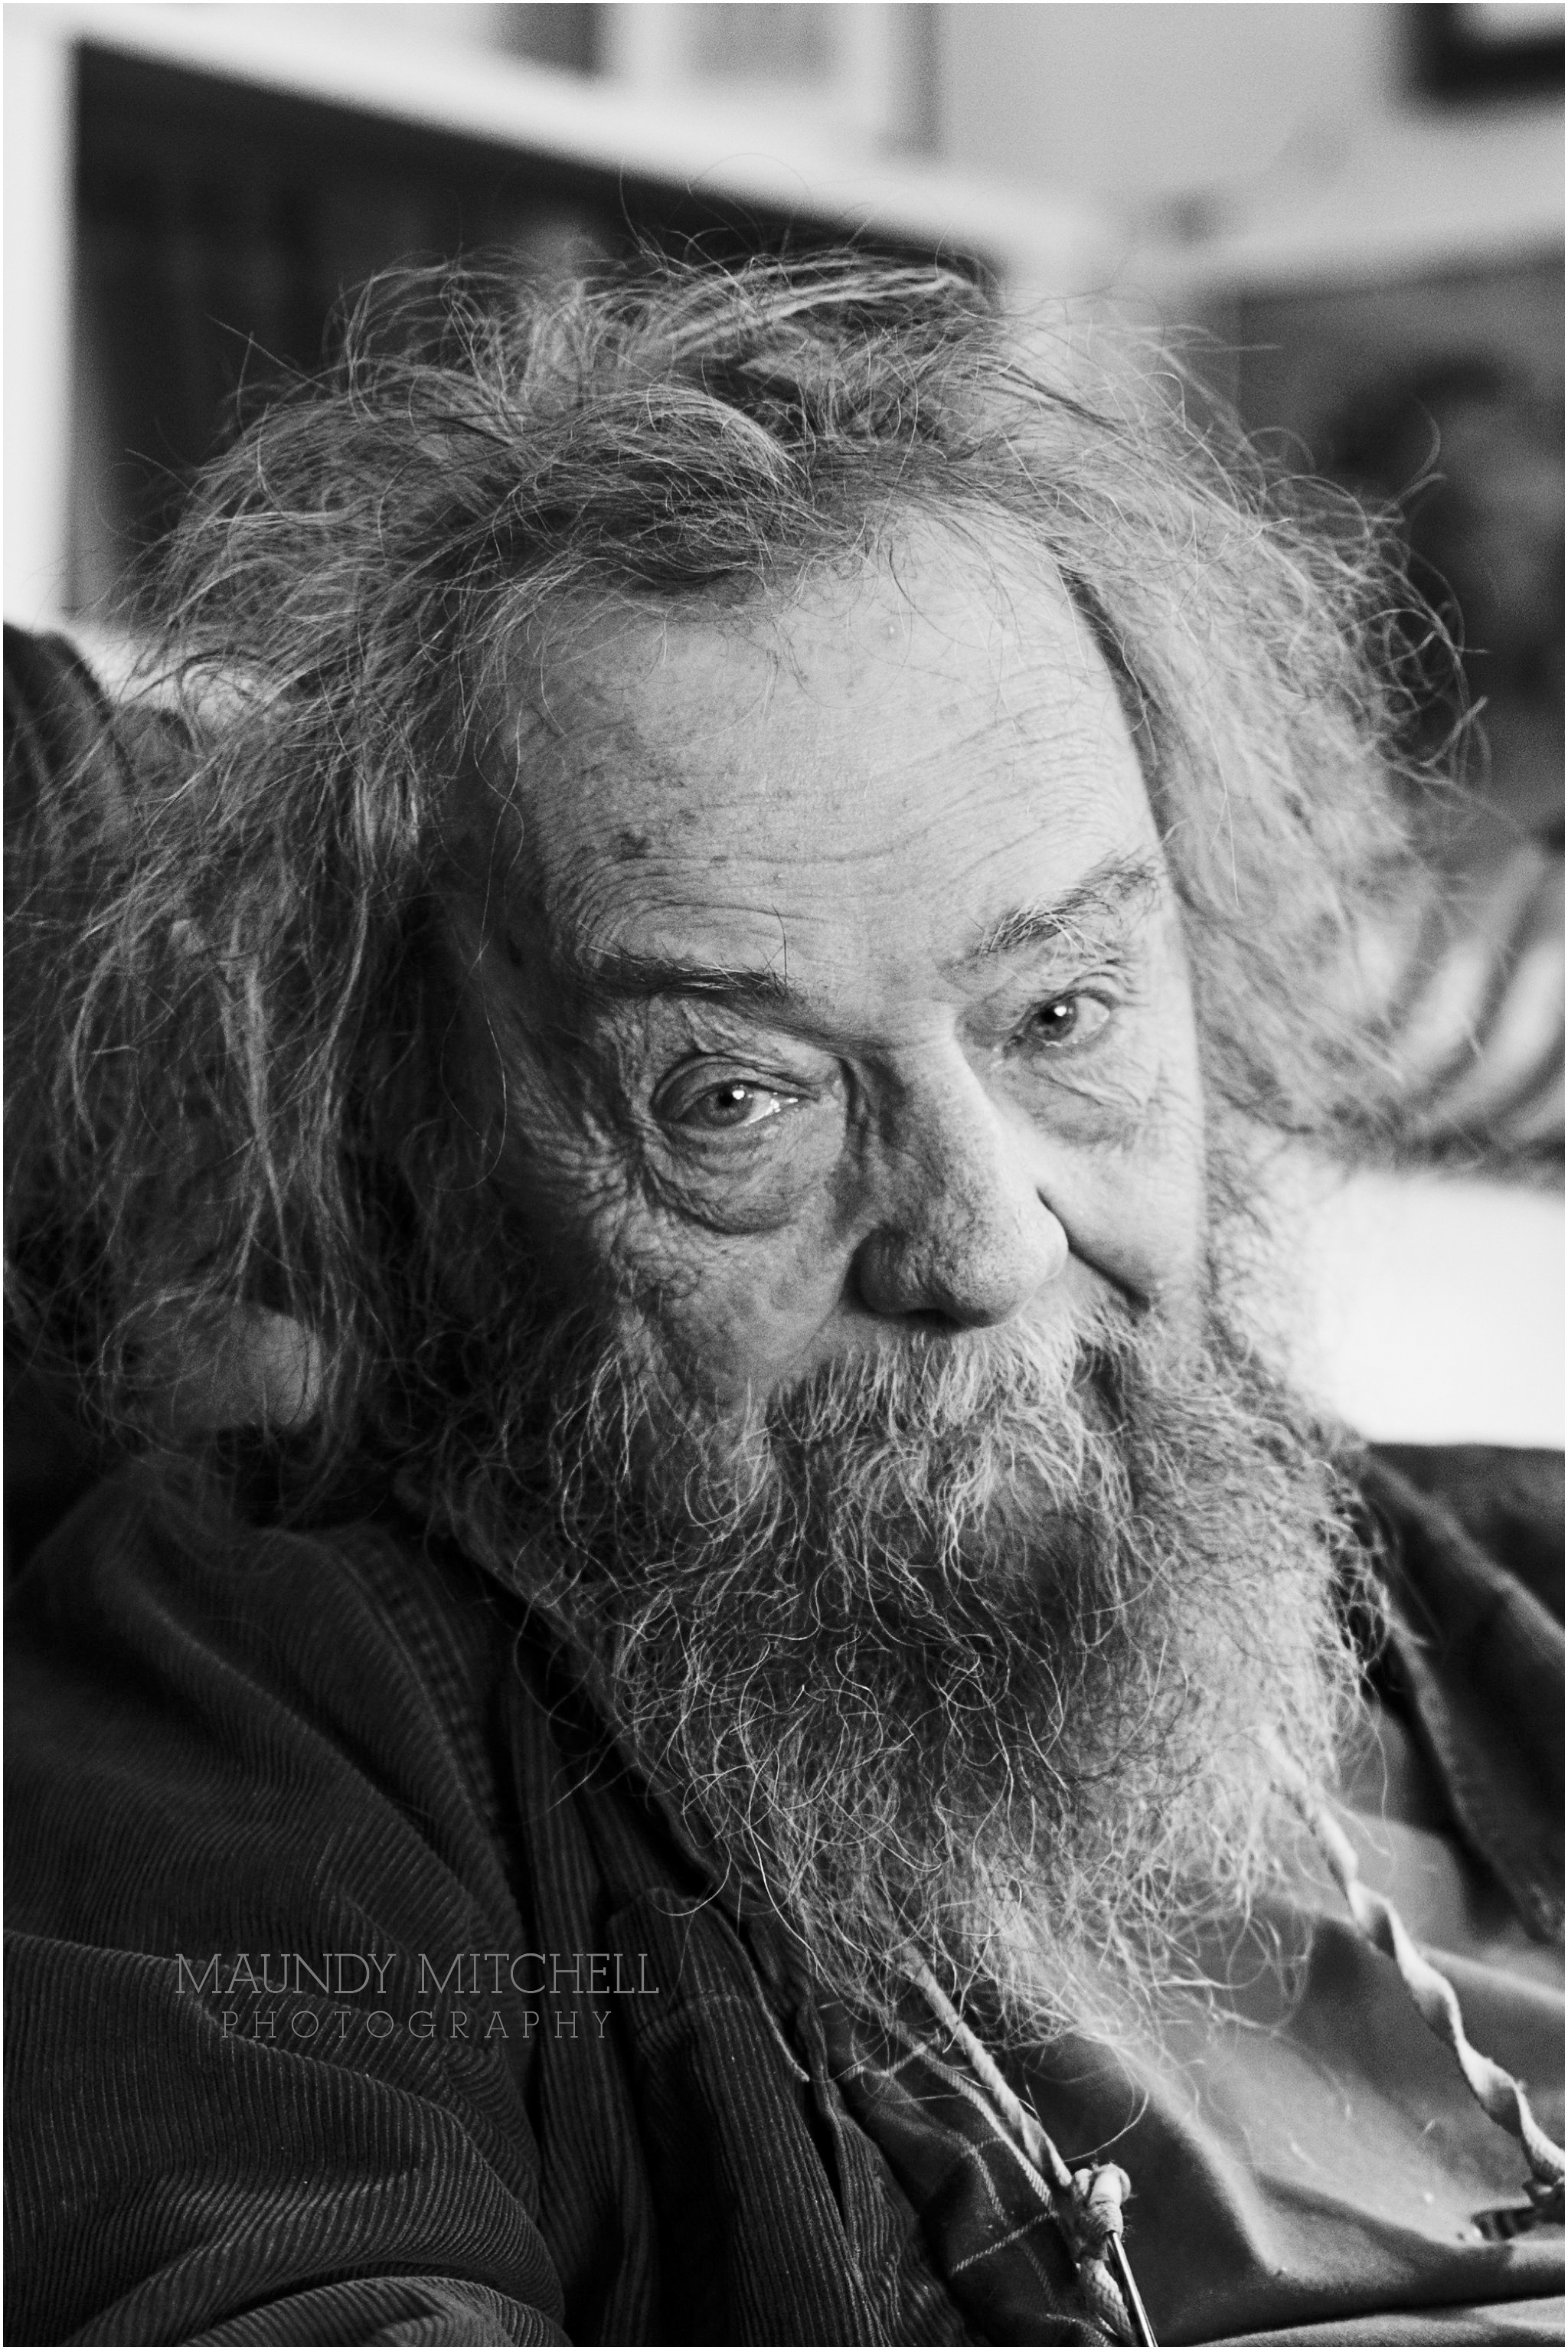 Donald Hall black & white portrait